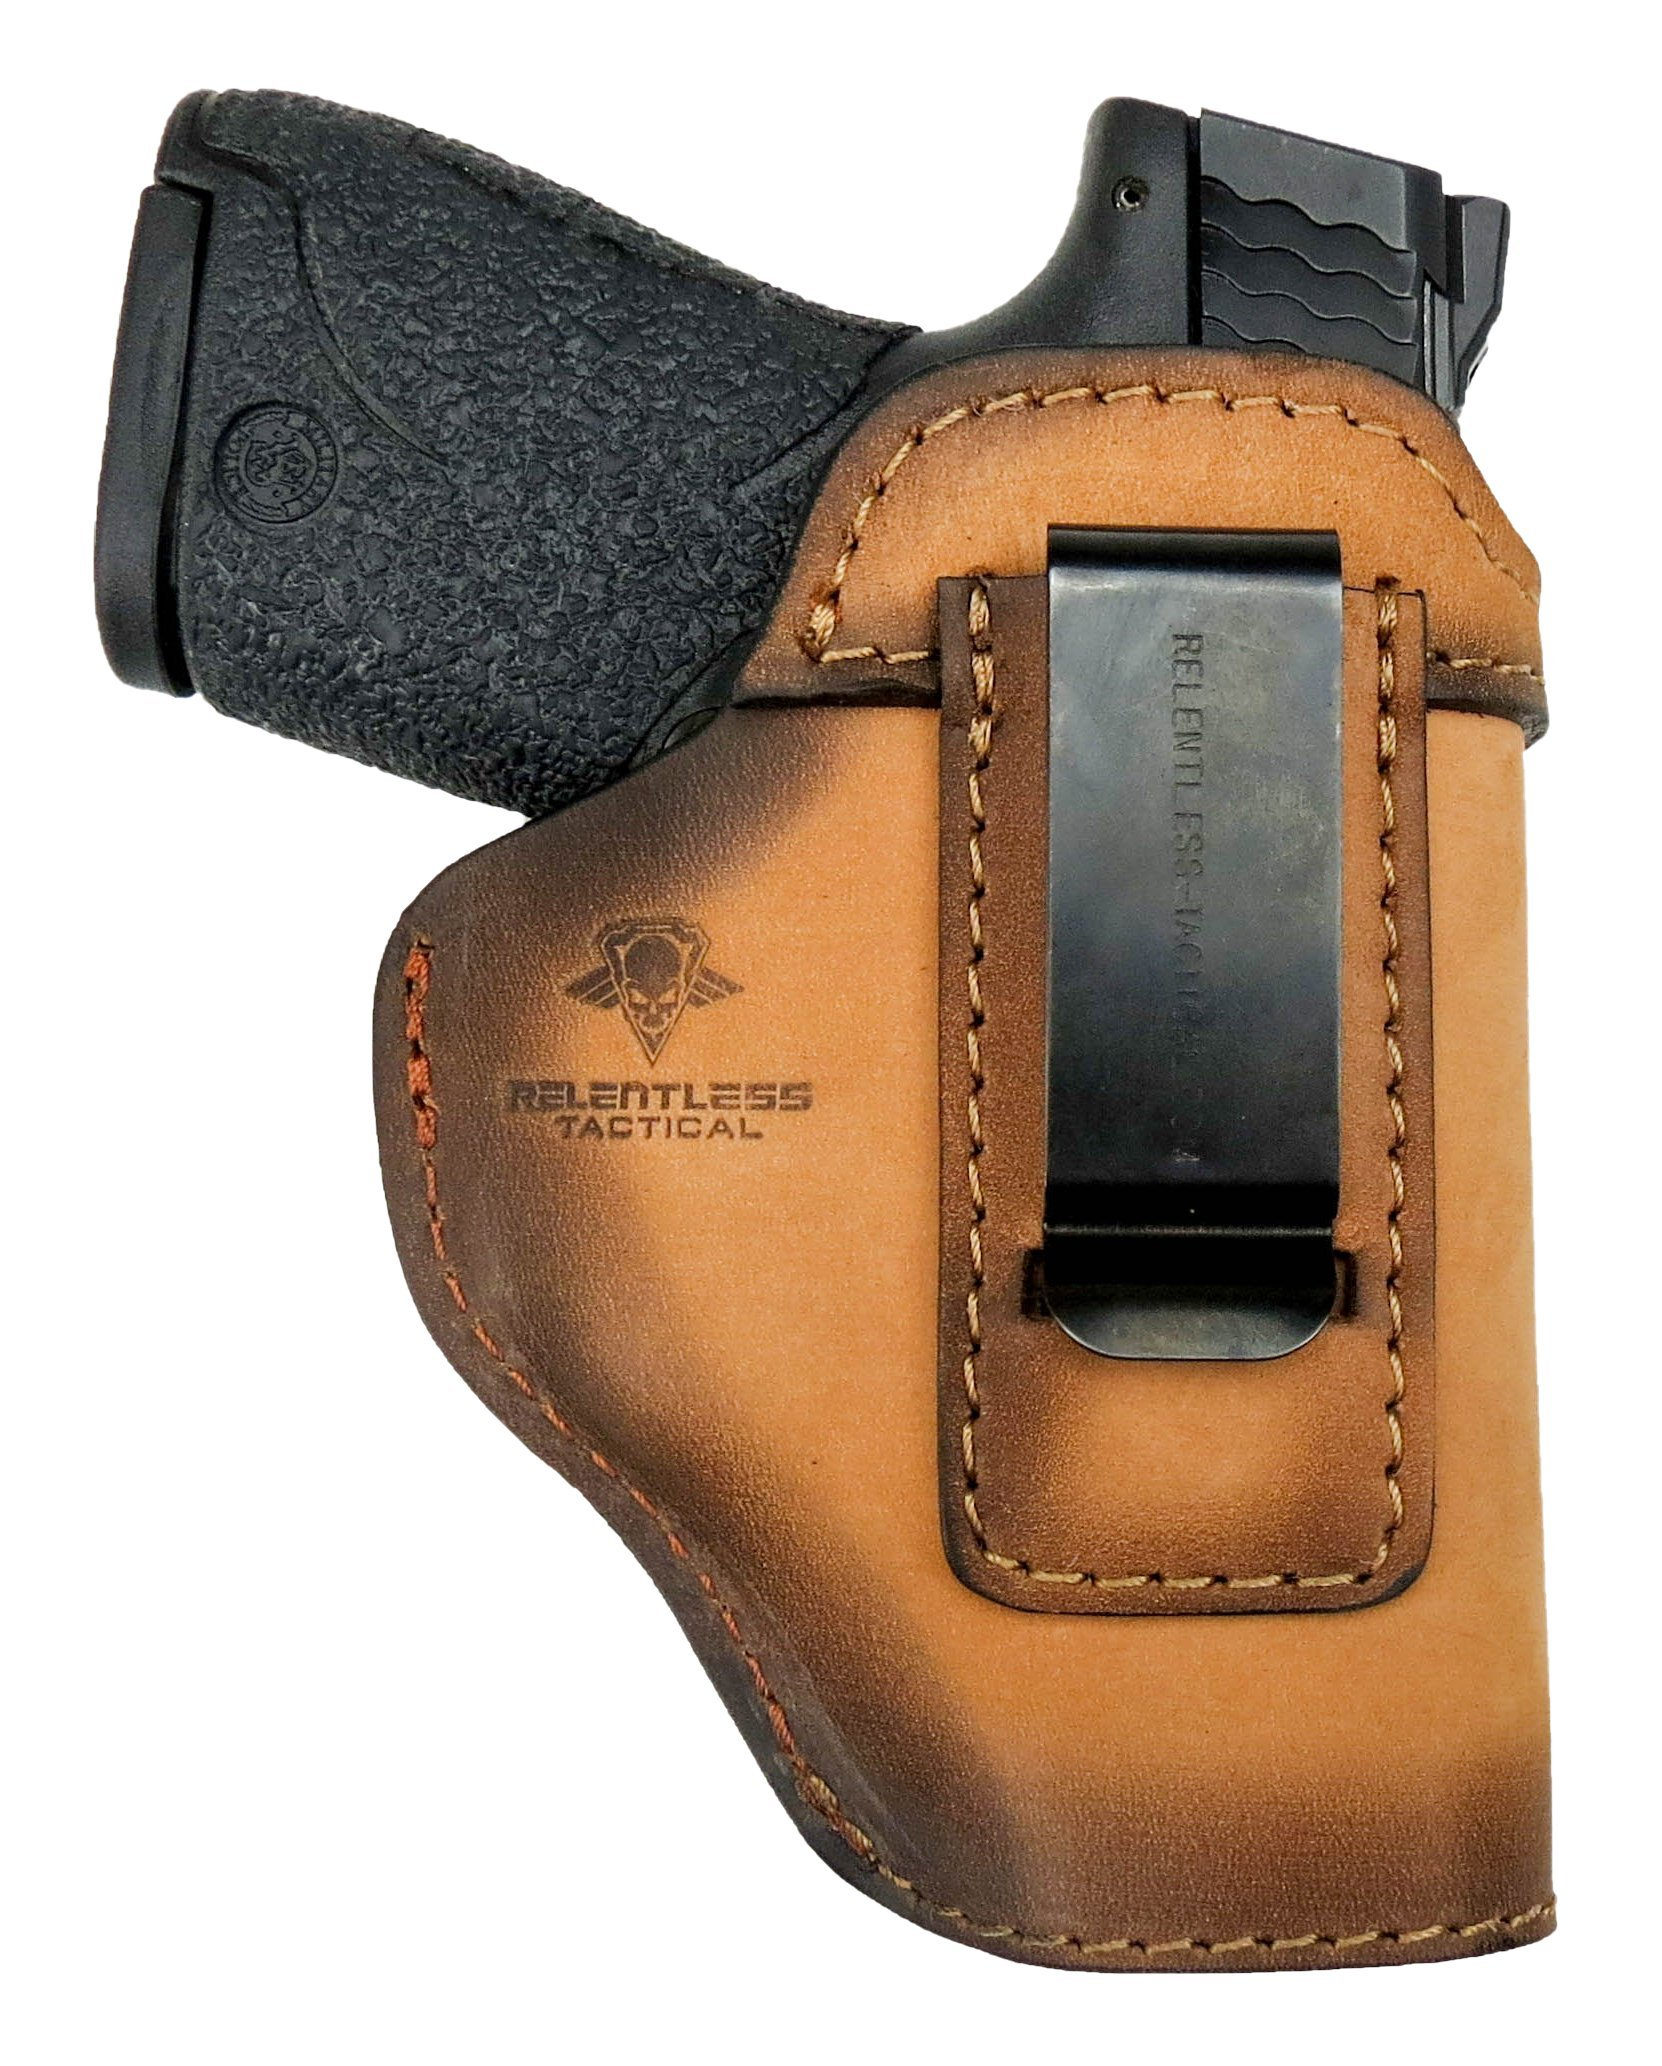 Relentless Tactical The Defender Leather IWB Holster - Made in USA - For S&W M&P Shield - GLOCK 17 19 22 23 32 33/Springfield XD & XDS/Plus All Similar Sized Handguns – Charred Oak – Right Handed by Relentless Tactical (Image #3)